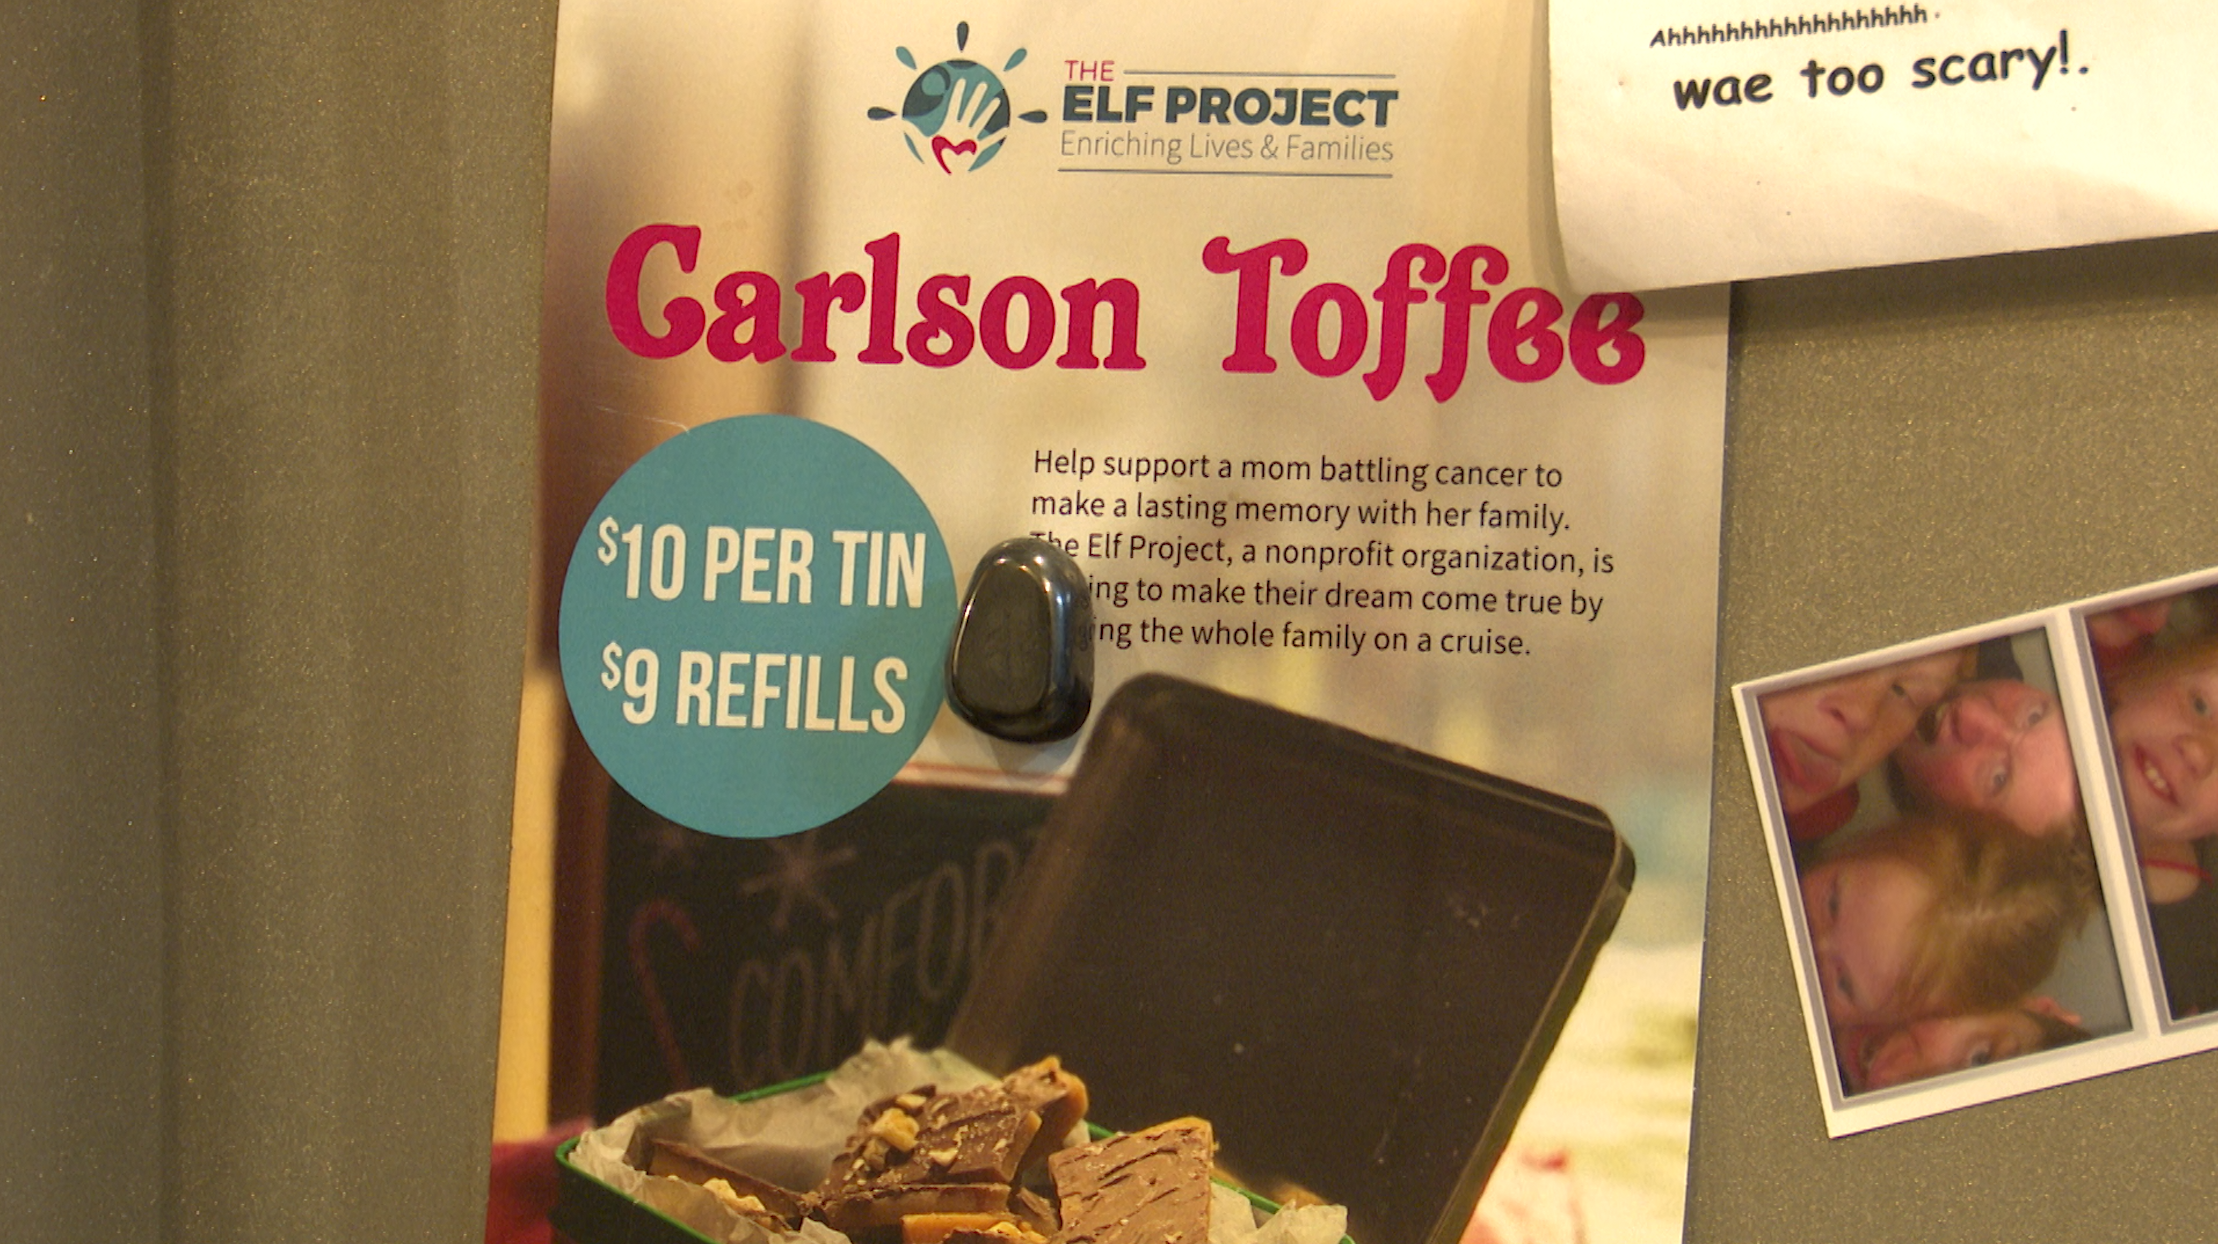 Toffee to fund a trip